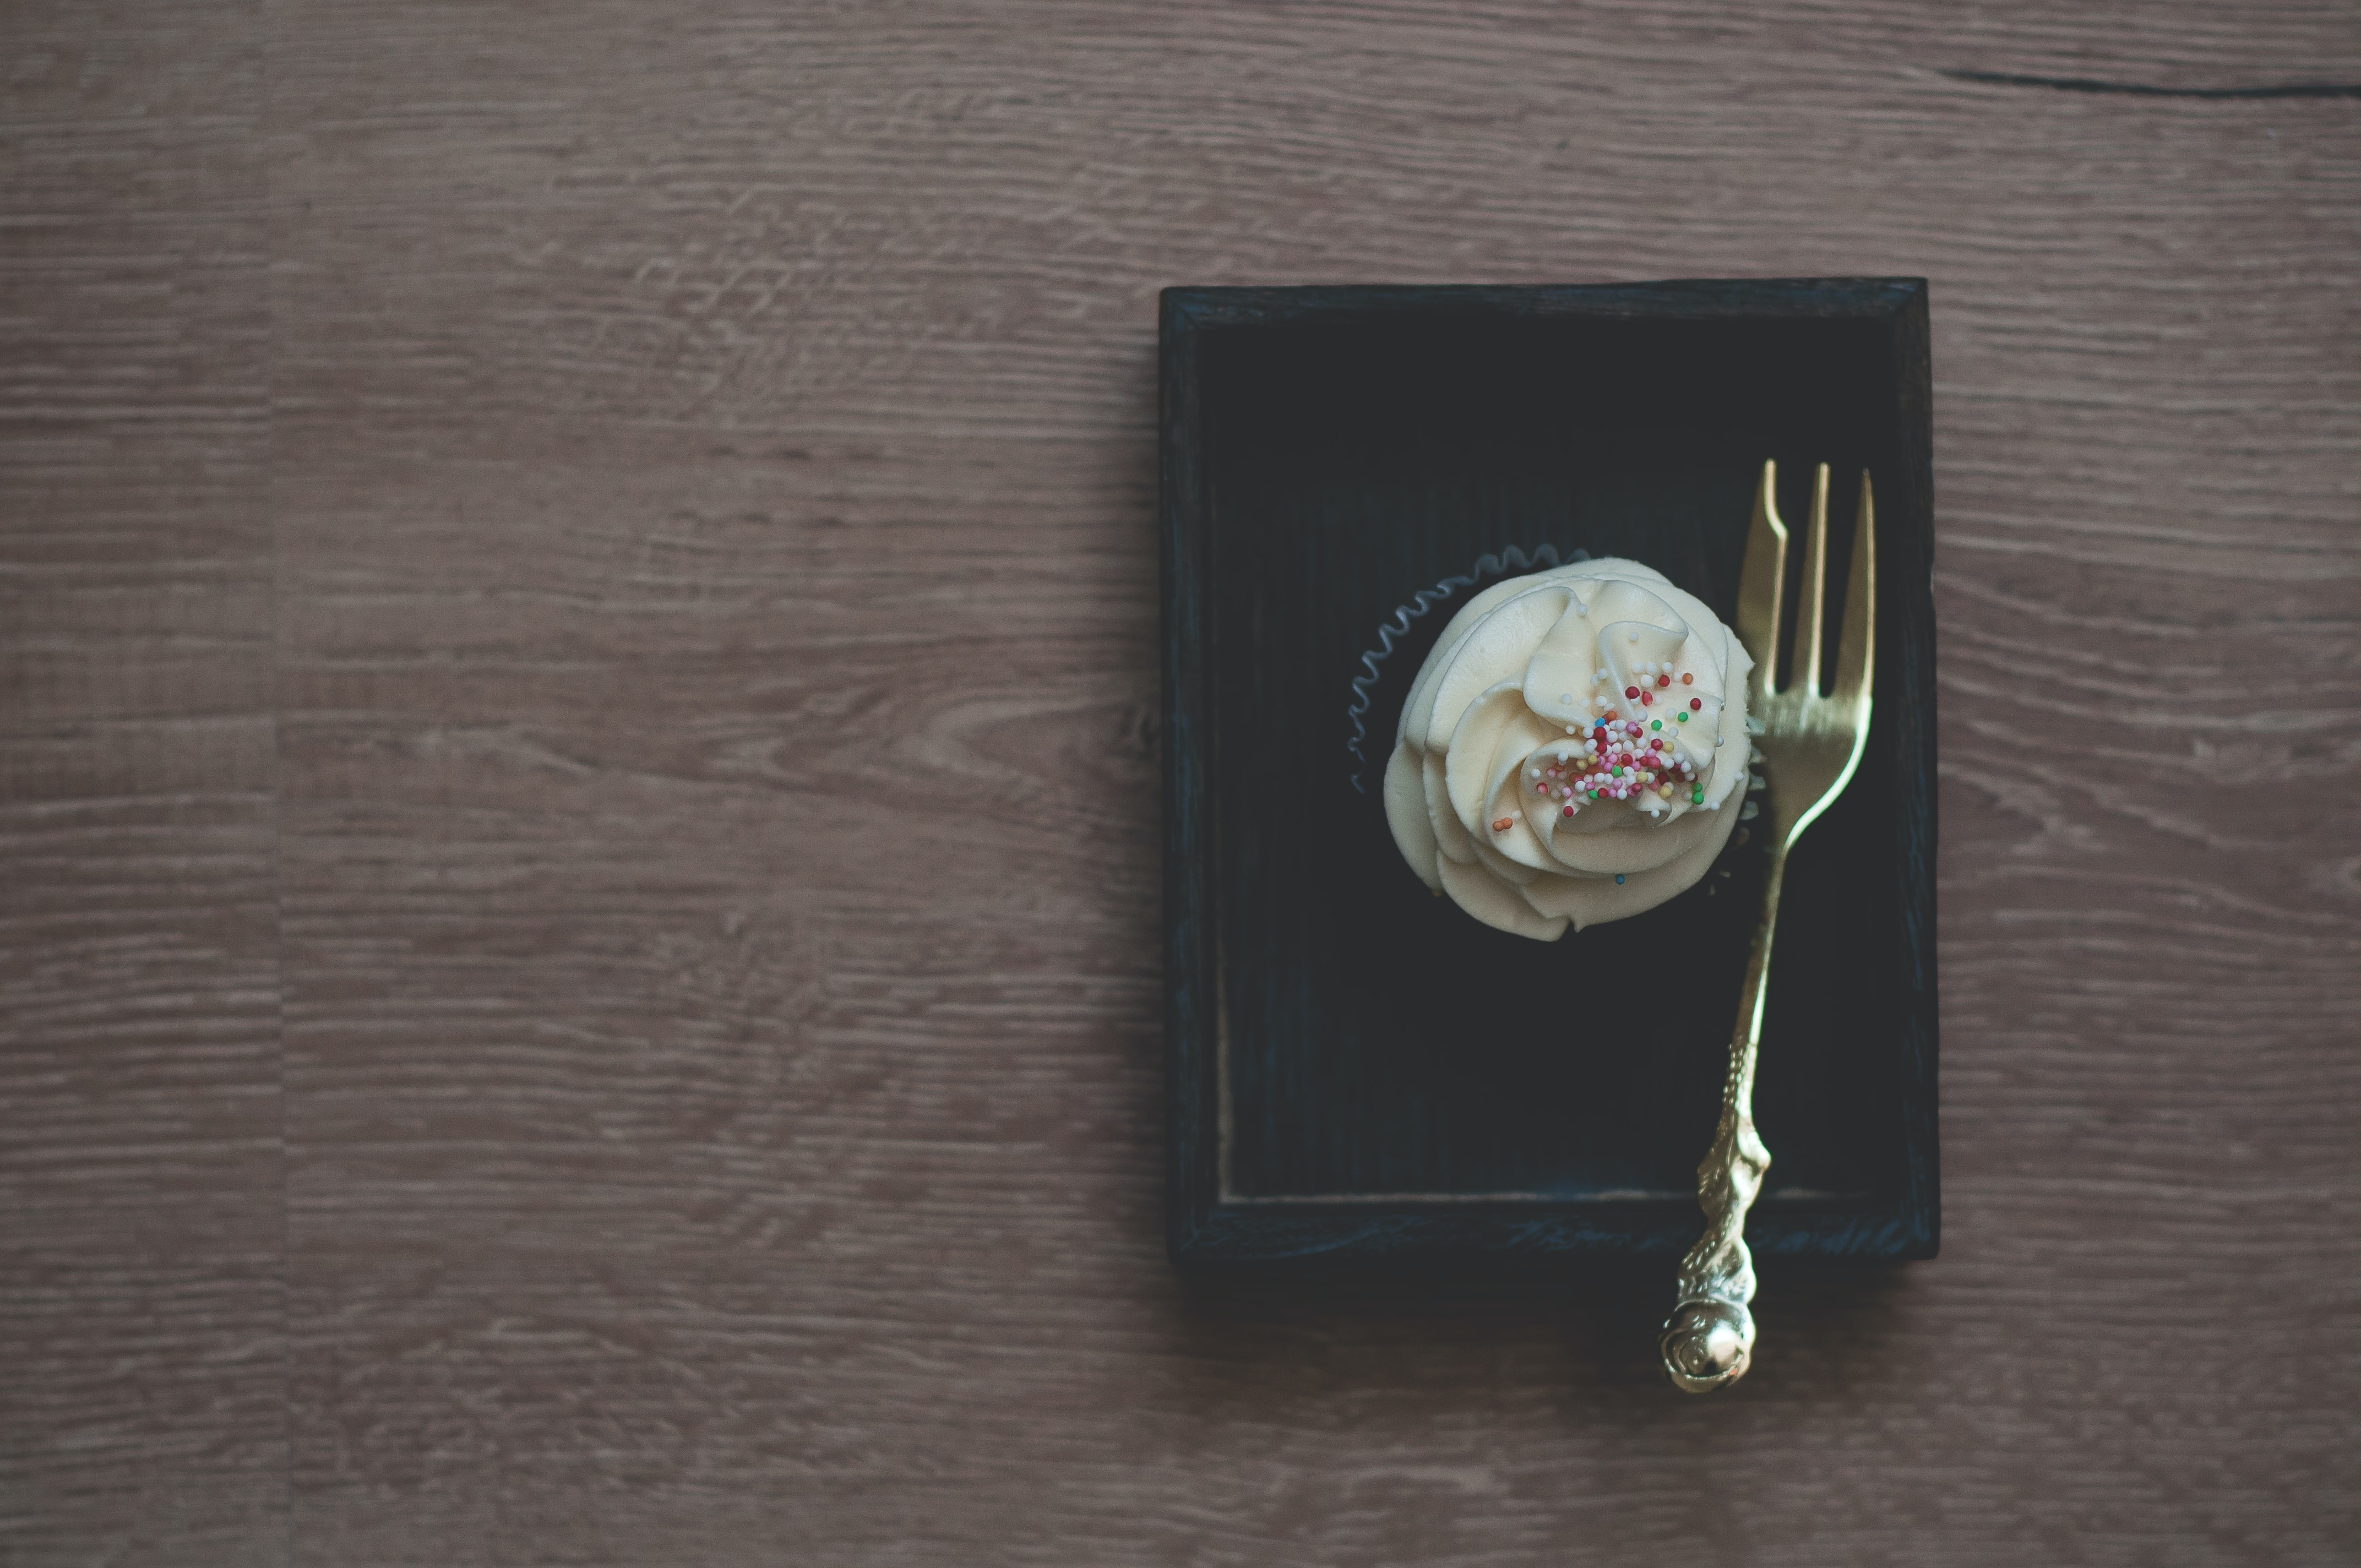 brass-colored pastry fork on black box beside cupcake with white frosting